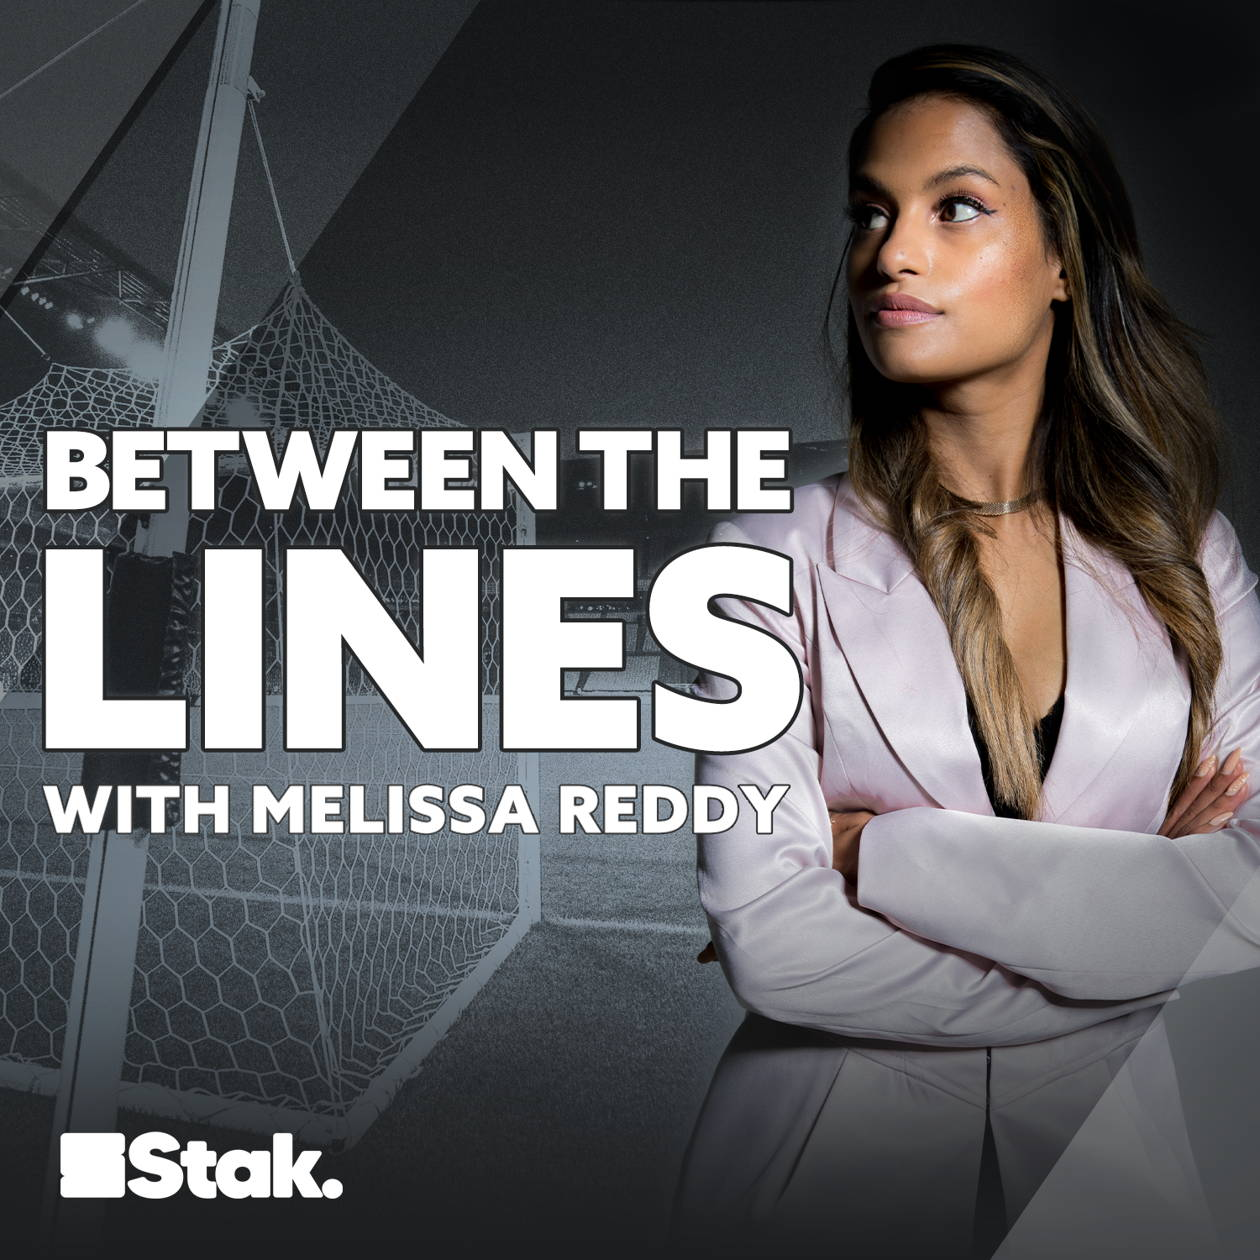 Artwork for the Between The Lines with Melissa Reddy podcast.